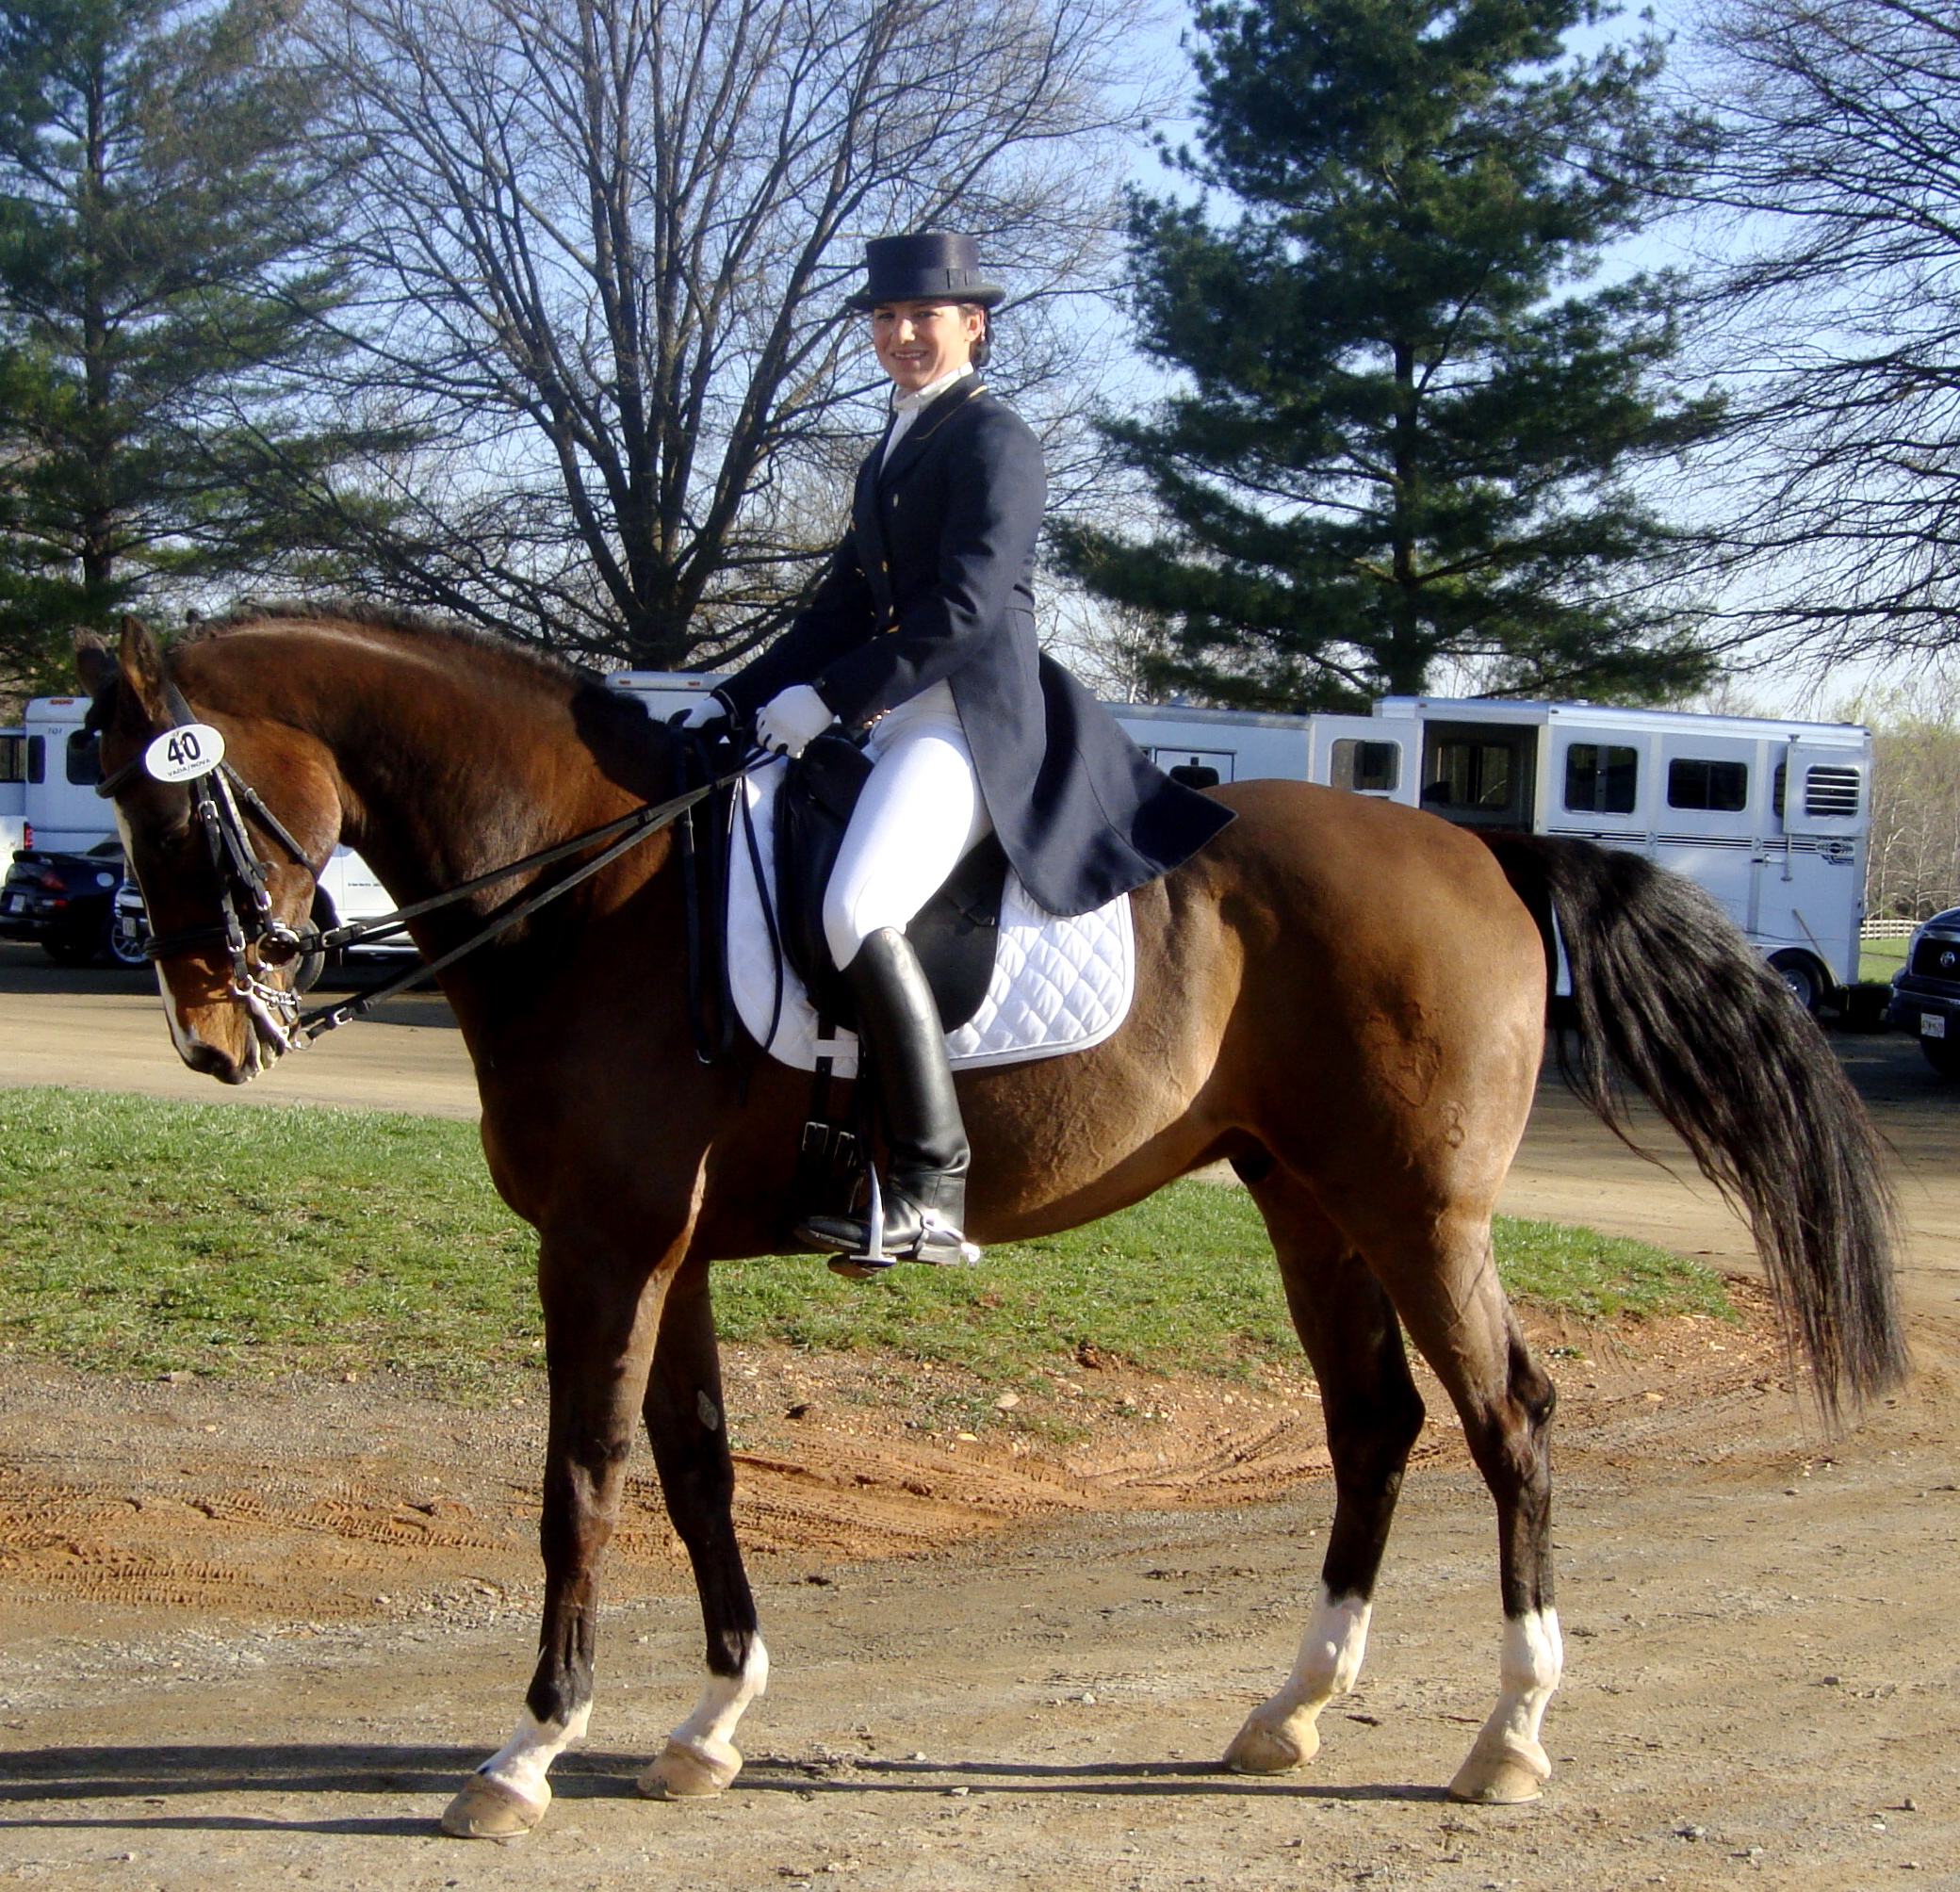 1995 Holsteiner Bay Gelding. 16.1 by Loutano x Nadinchen/Fasolt  Shown through Prix St Georges. Earned his owner her Silver Medal. Cooper has an excellent walk, easy to make a fancy trot, loves to passage, expressive changes, very easy to half pass and he's extremely fun to work with. Numerous championships for his Young Rider.